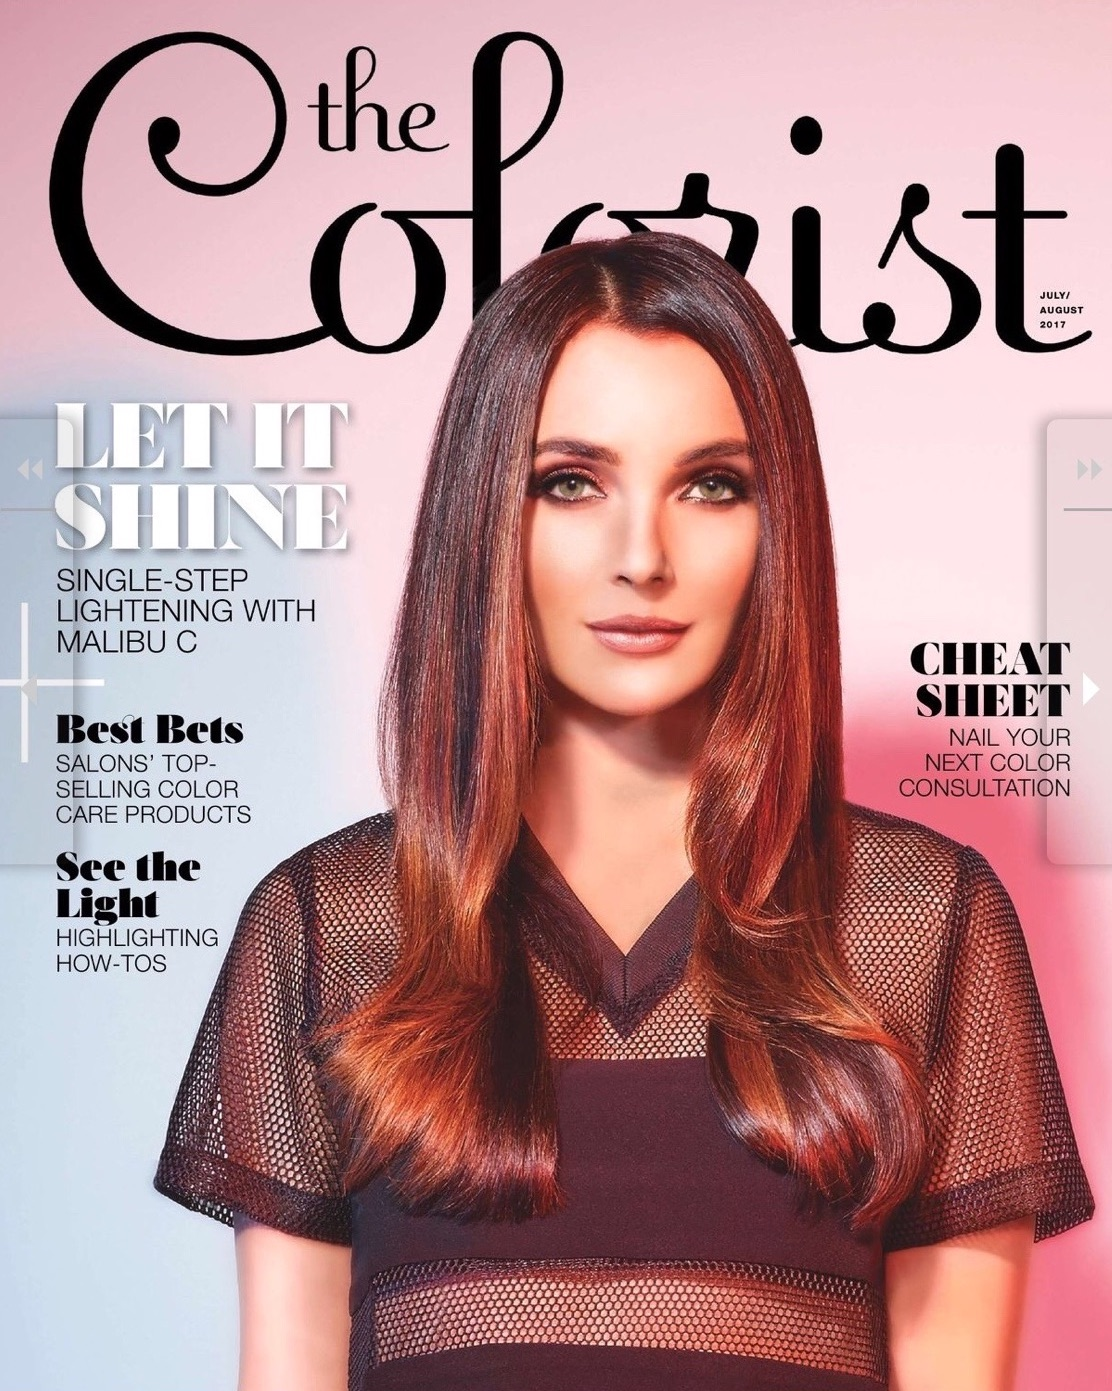 The colorist foilbox magazine article